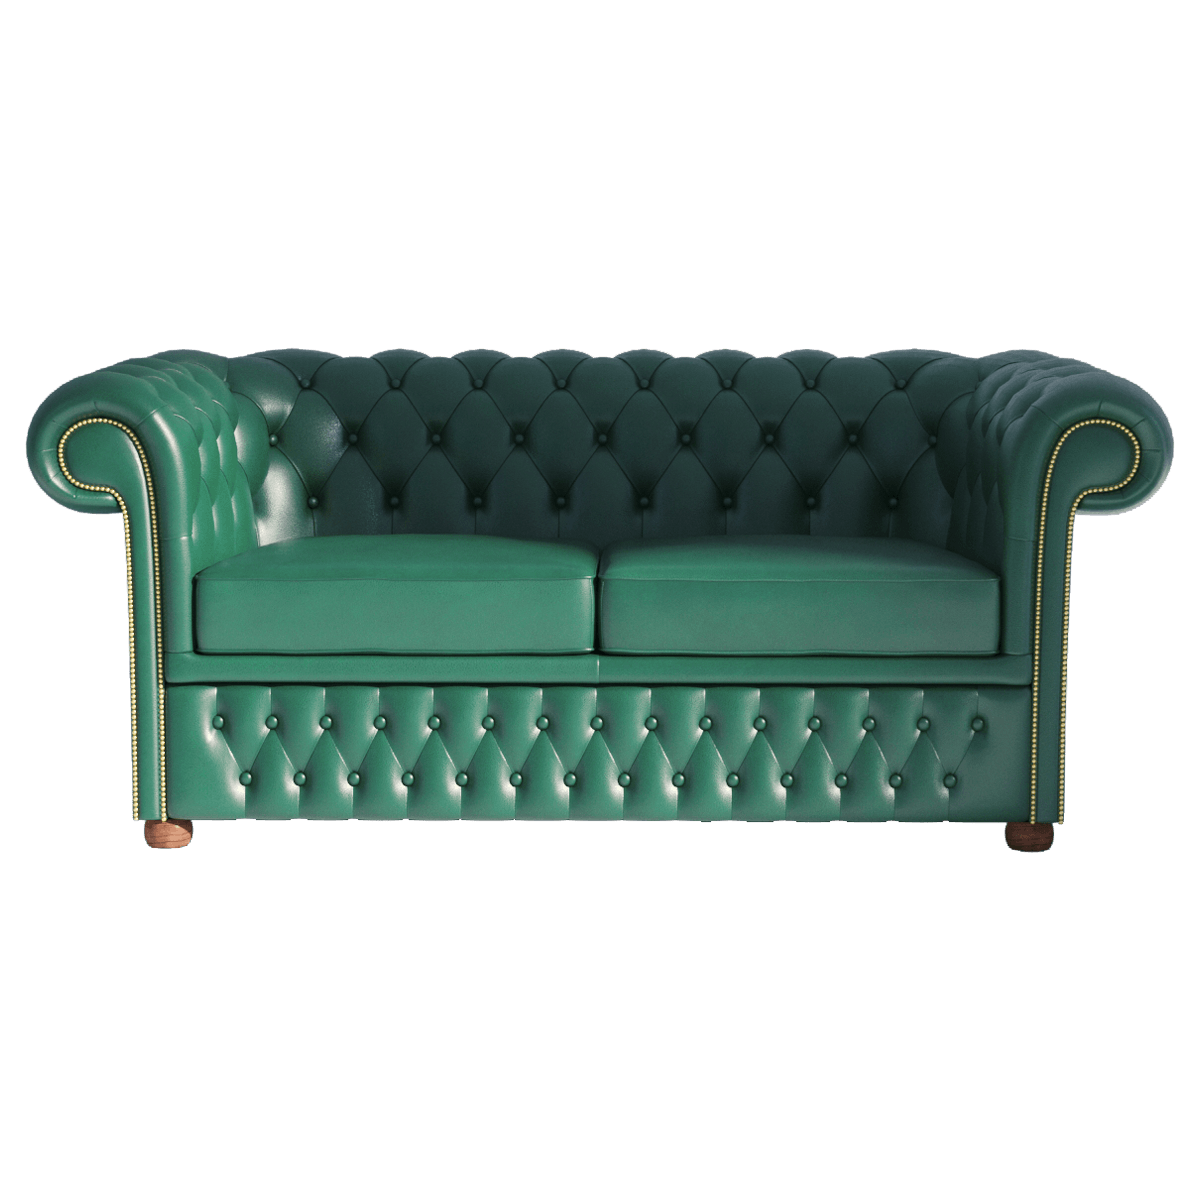 - Chesterfield Sofa 2 Green Renderee 3D